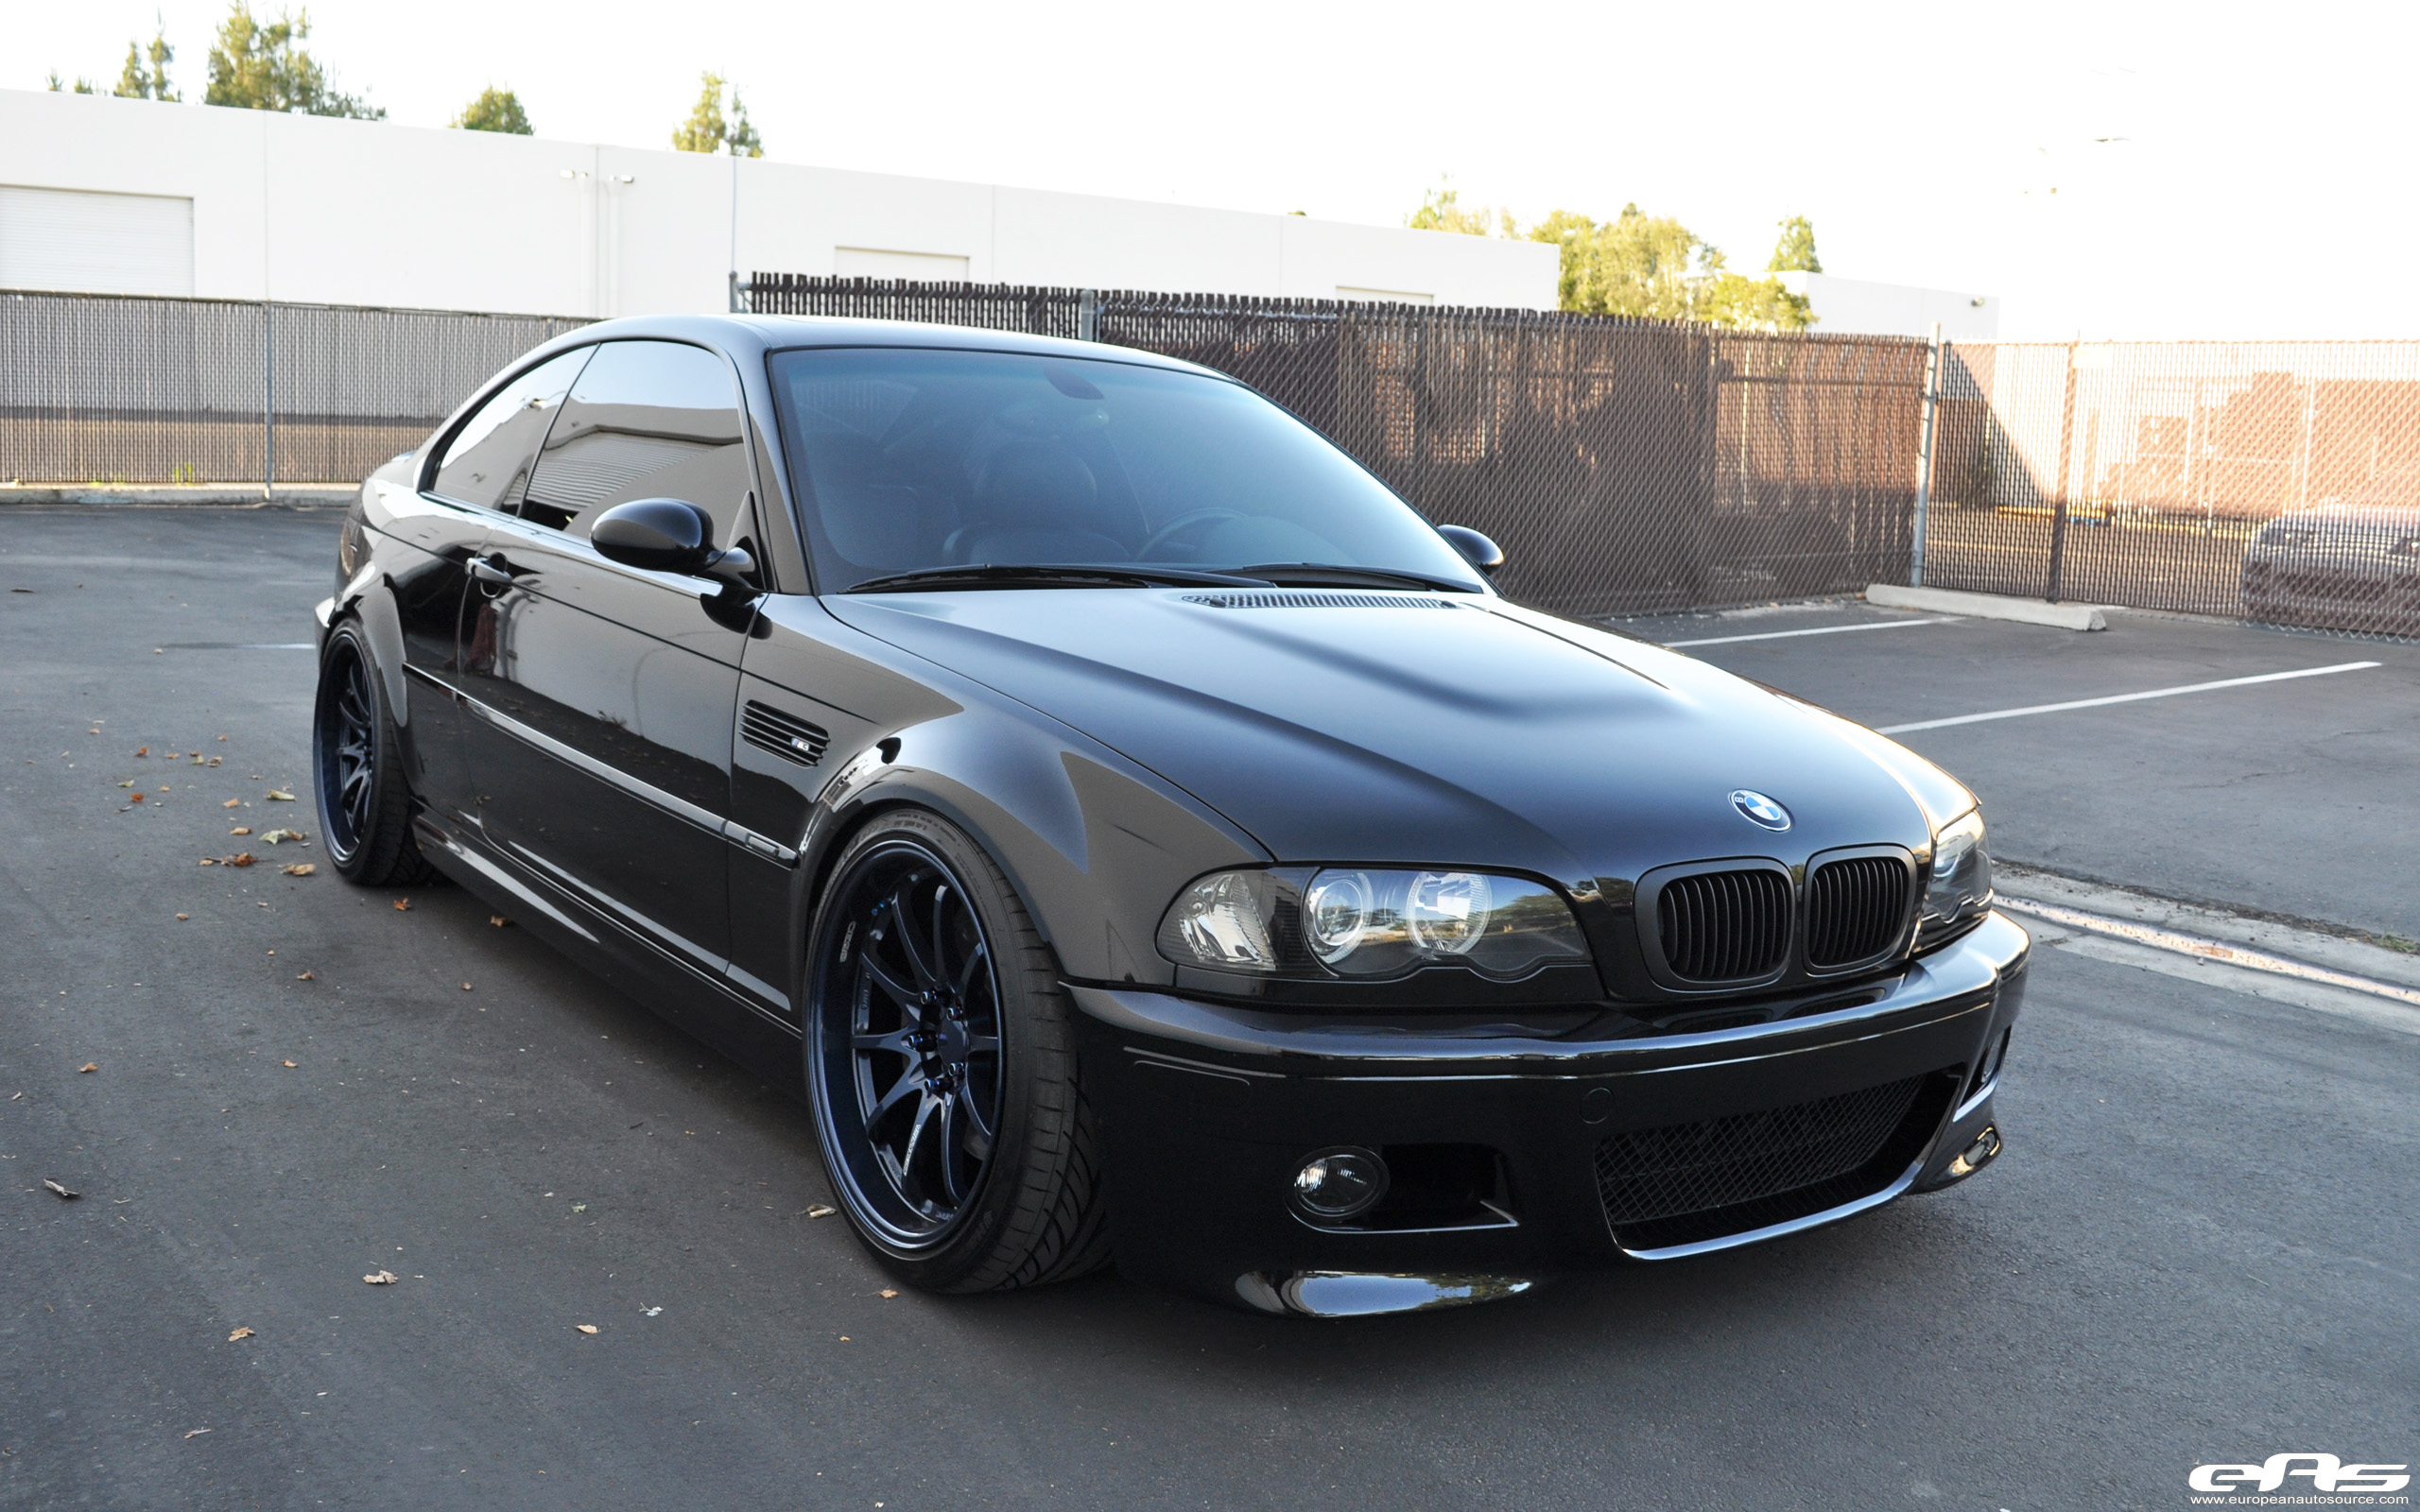 Black E46 M3 with Magnesium Blue Volk CE28 Wheels